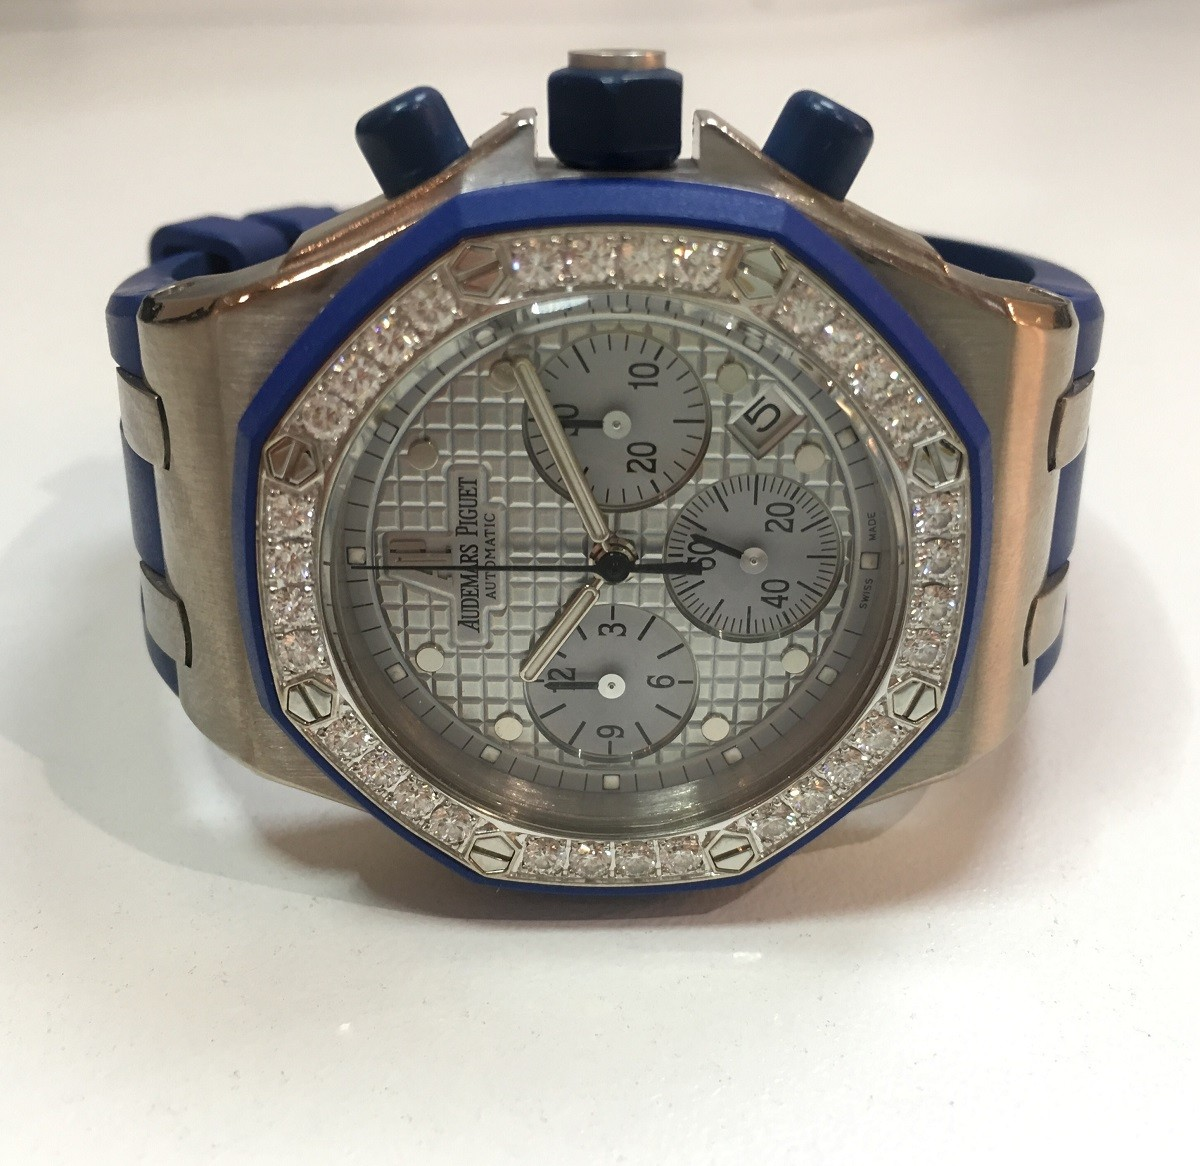 Pre-Owned Audemars Piguet White Gold Royal Oak  ChronoGraph Offshore with Diamond Bezel